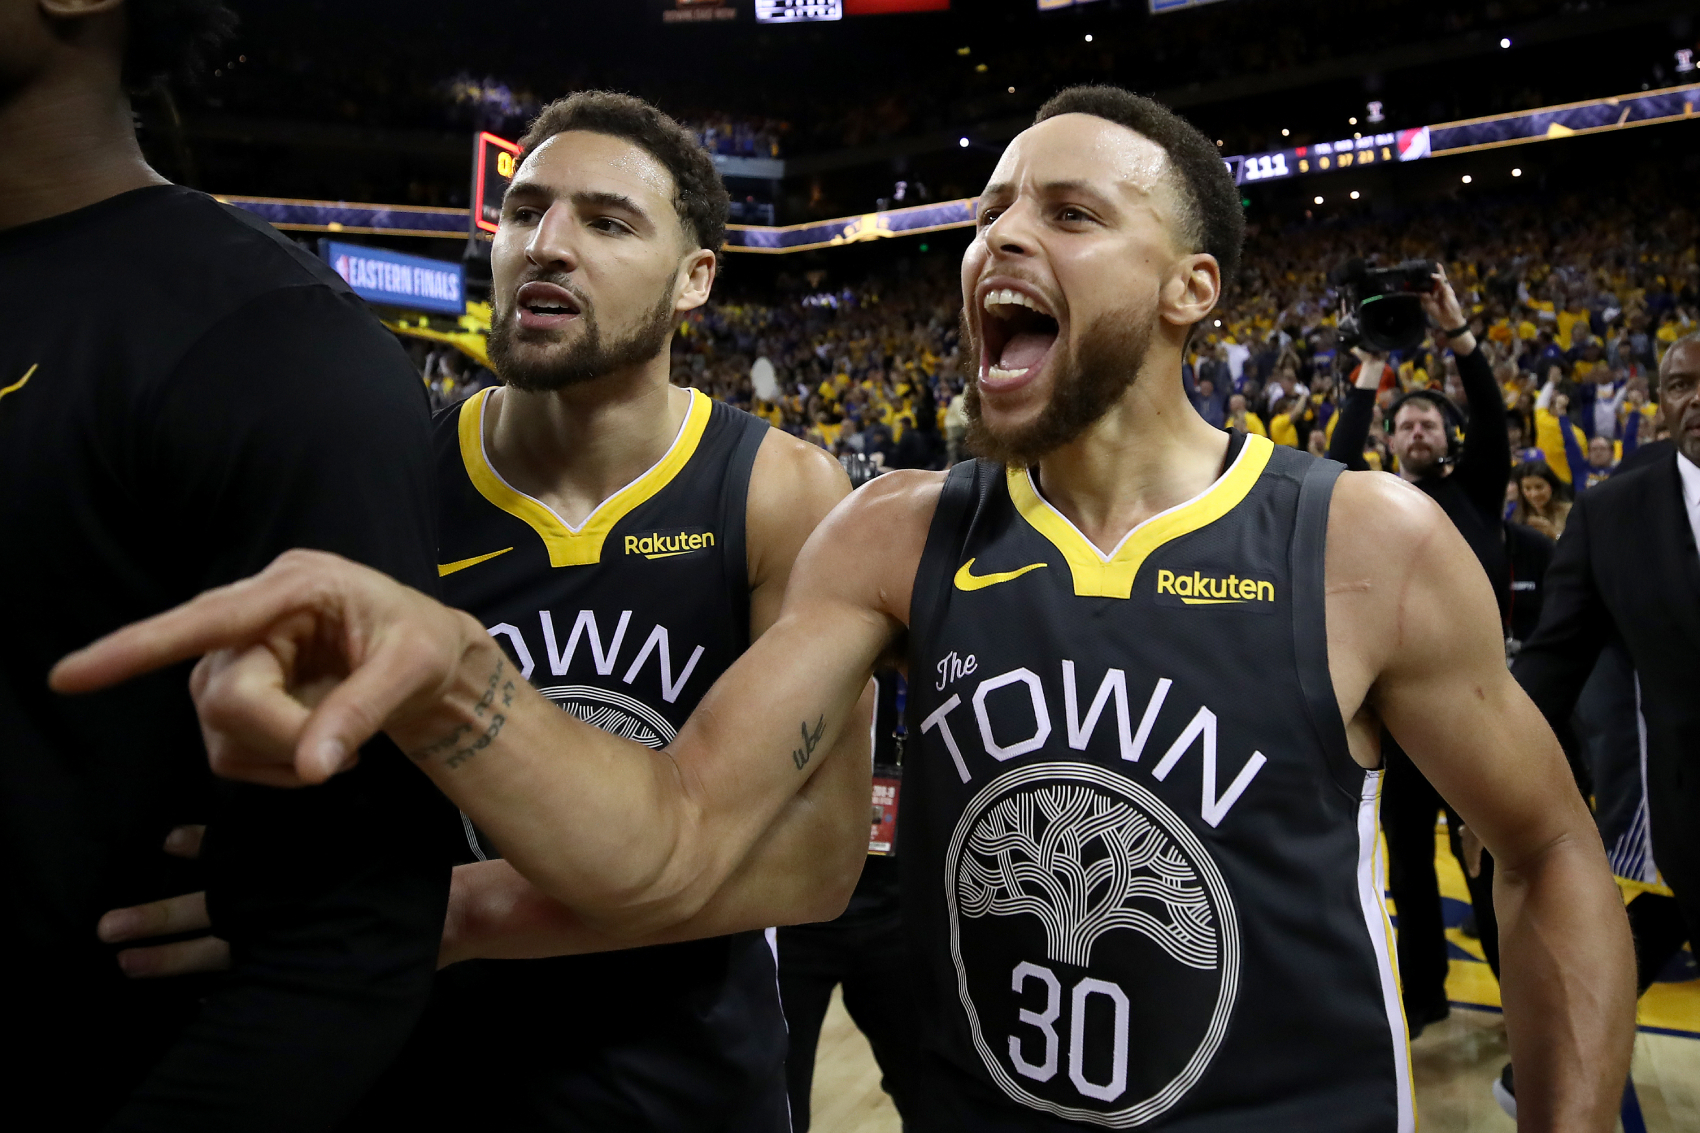 The Golden State Warriors have a talented team. Their new $14.3 Million man, Kelly Oubre Jr., is already clicking with Stephen Curry, too.